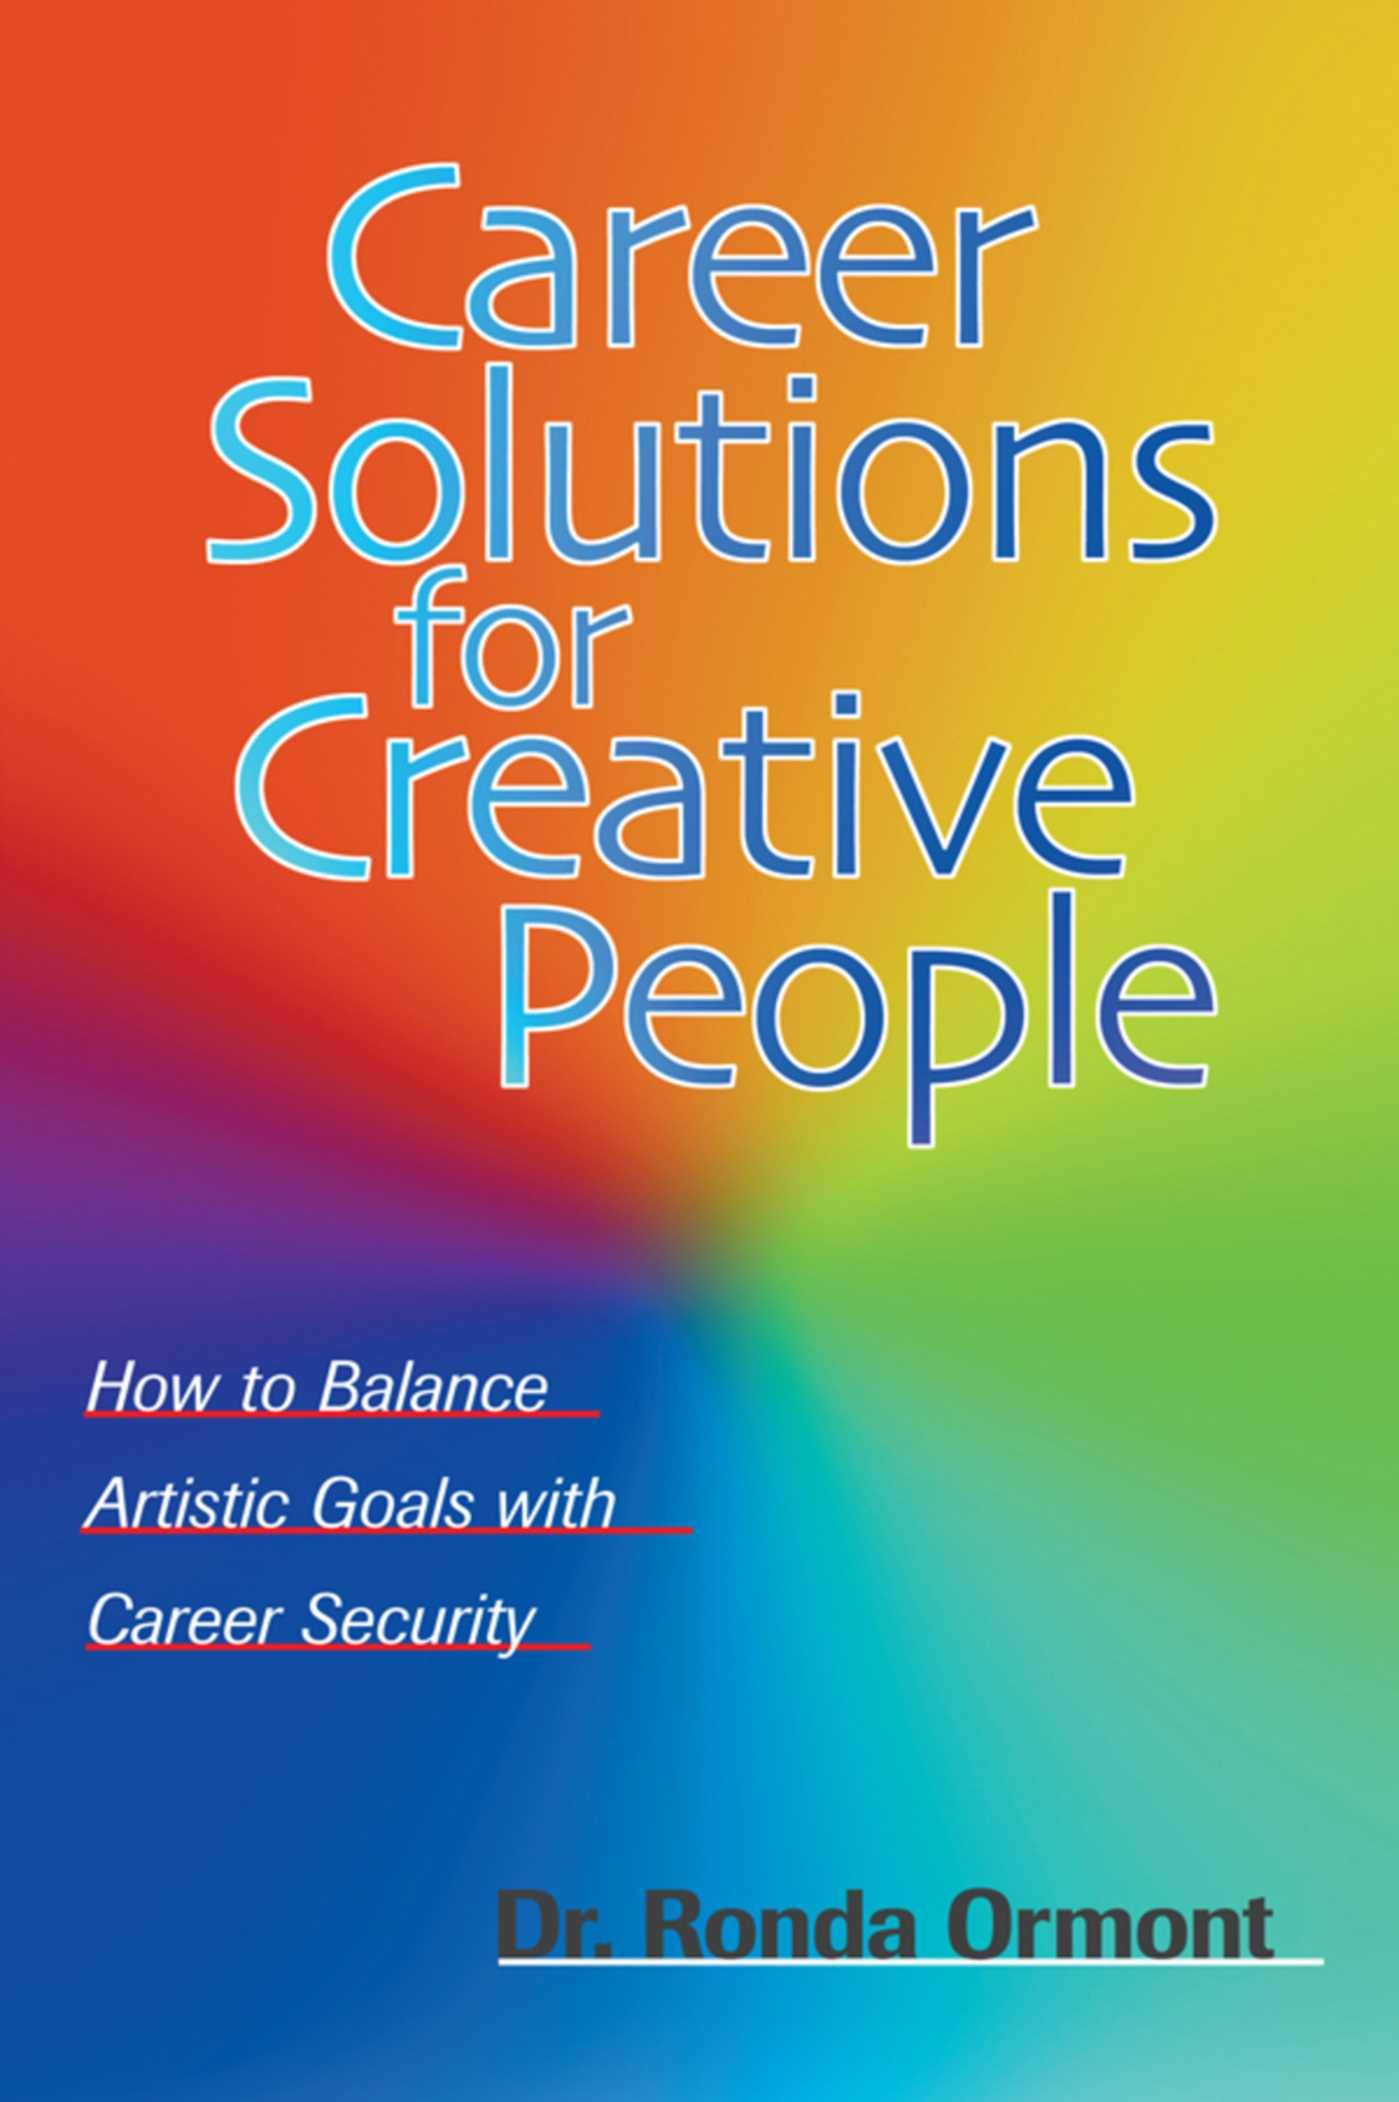 Career Solutions for Creative People: How to Balance Artistic Goals with Career Security